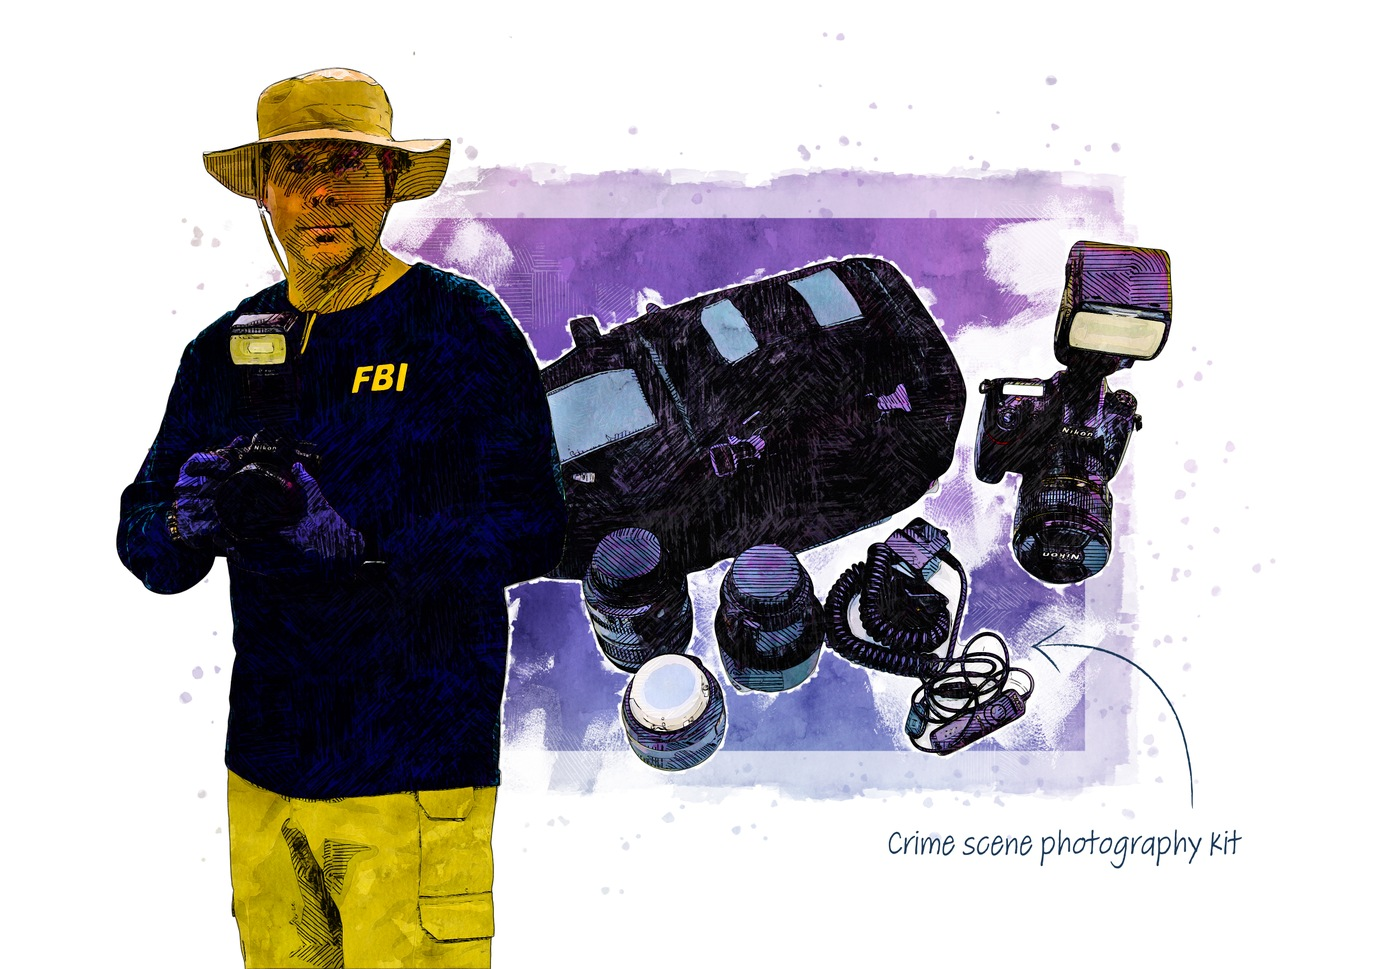 Illustration of a crime scene photographer and equipment.